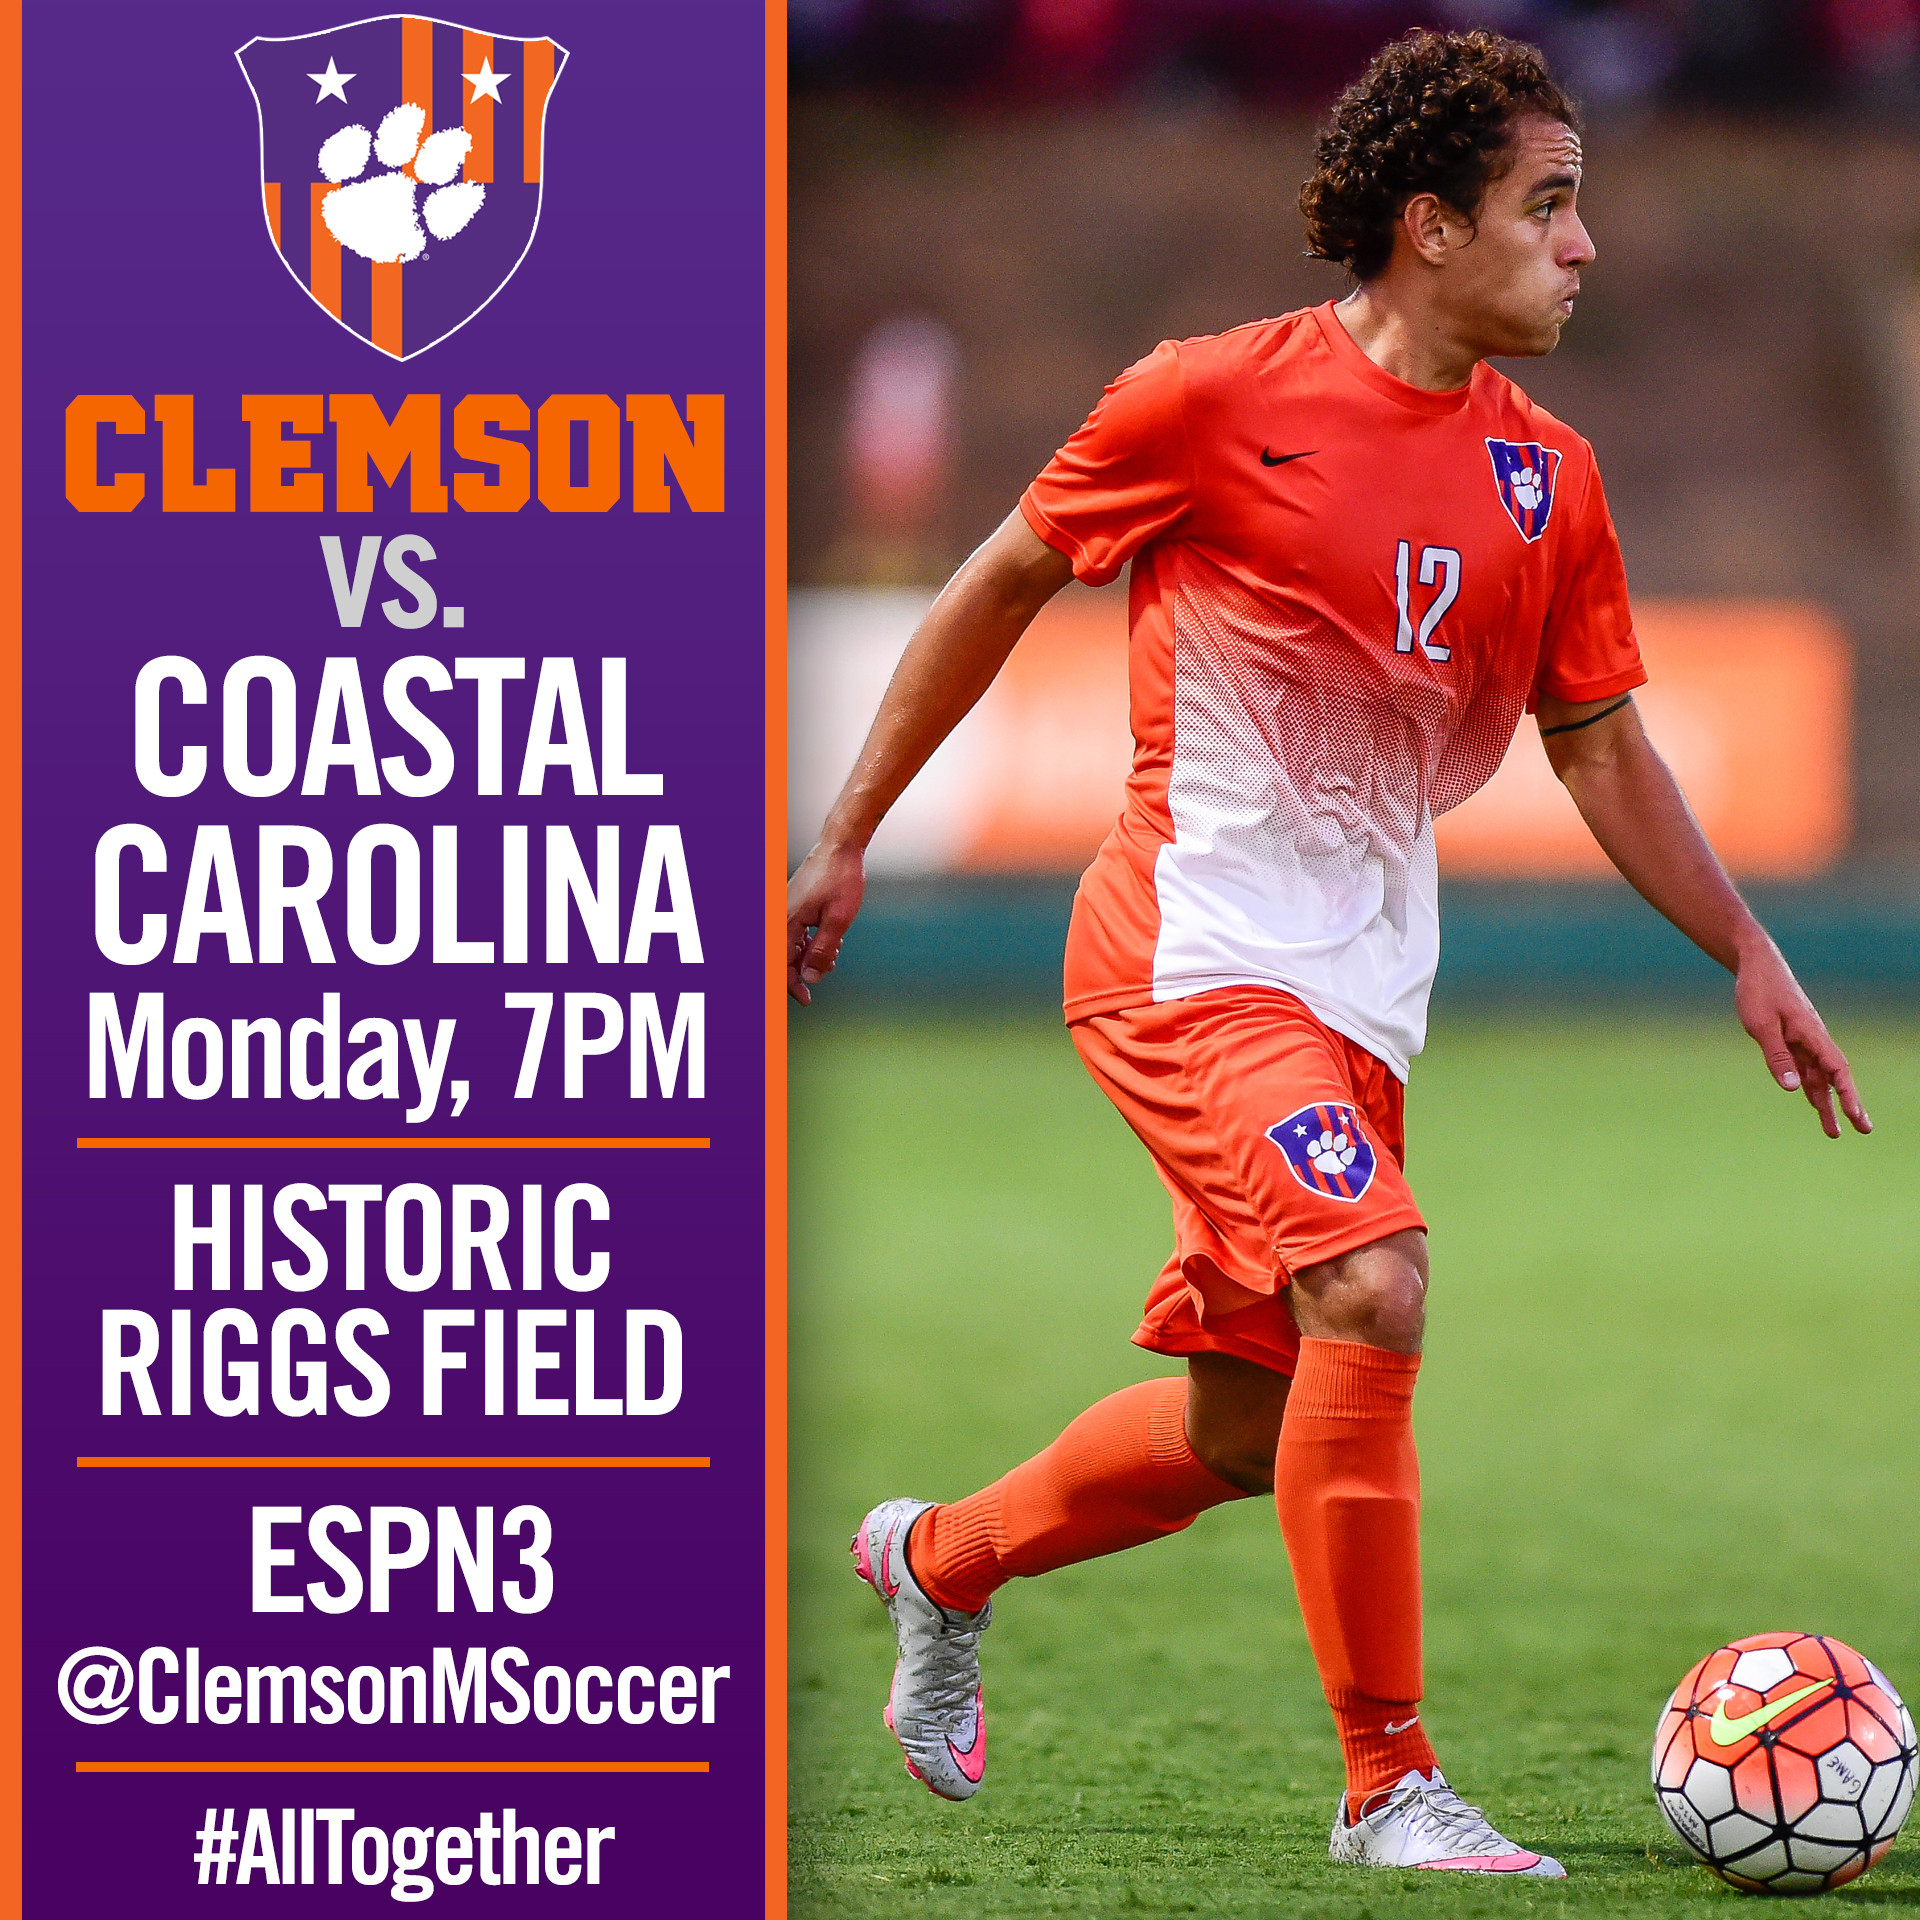 No. 6 Clemson Hosts No. 11 Coastal Carolina Monday